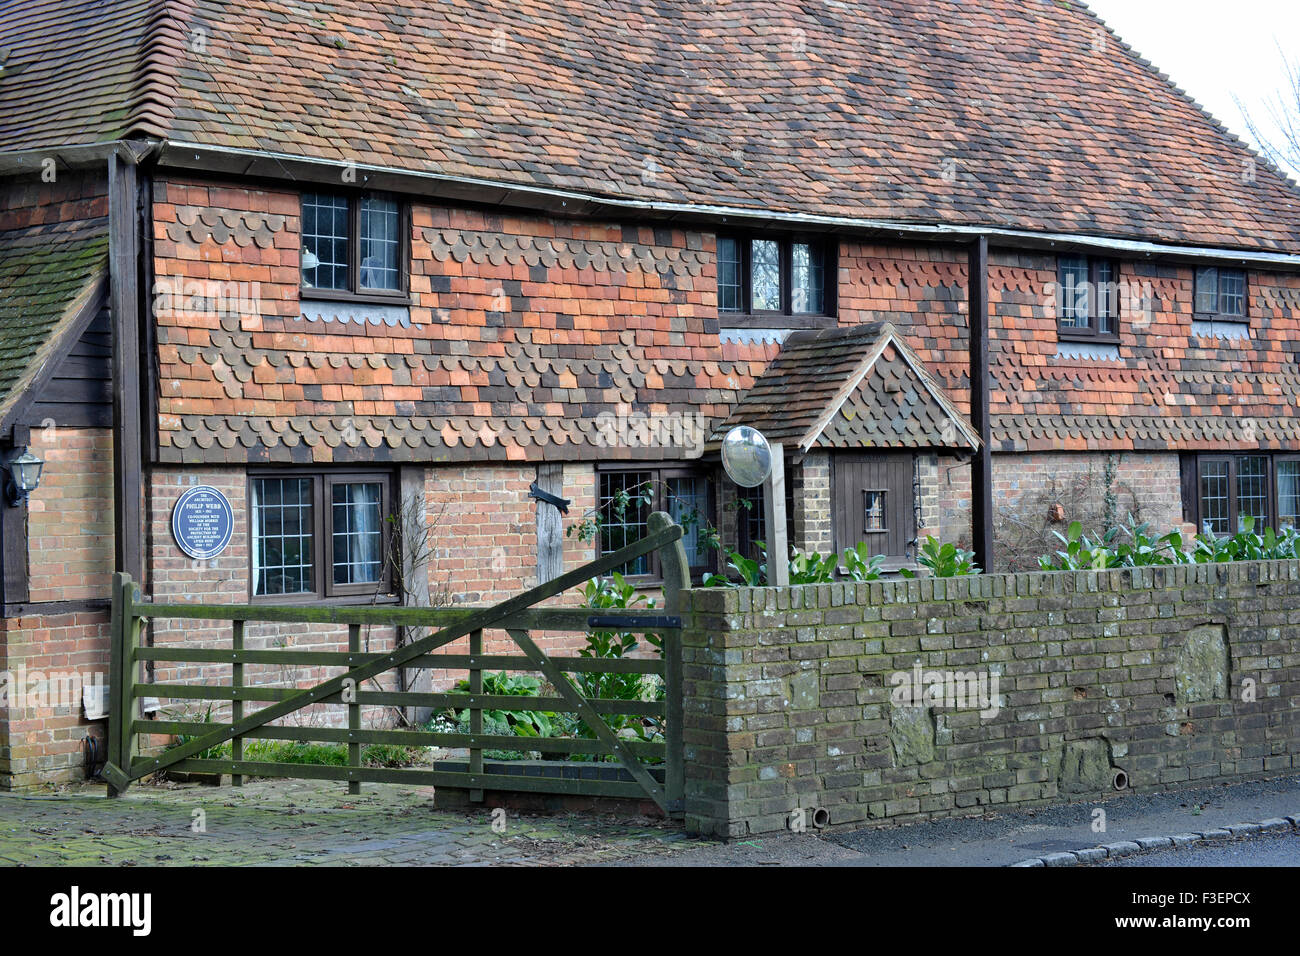 Blue plaque for Philip Webb at Turners Hill Road, Pound Hill, West Sussex, England, UK. - Stock Image